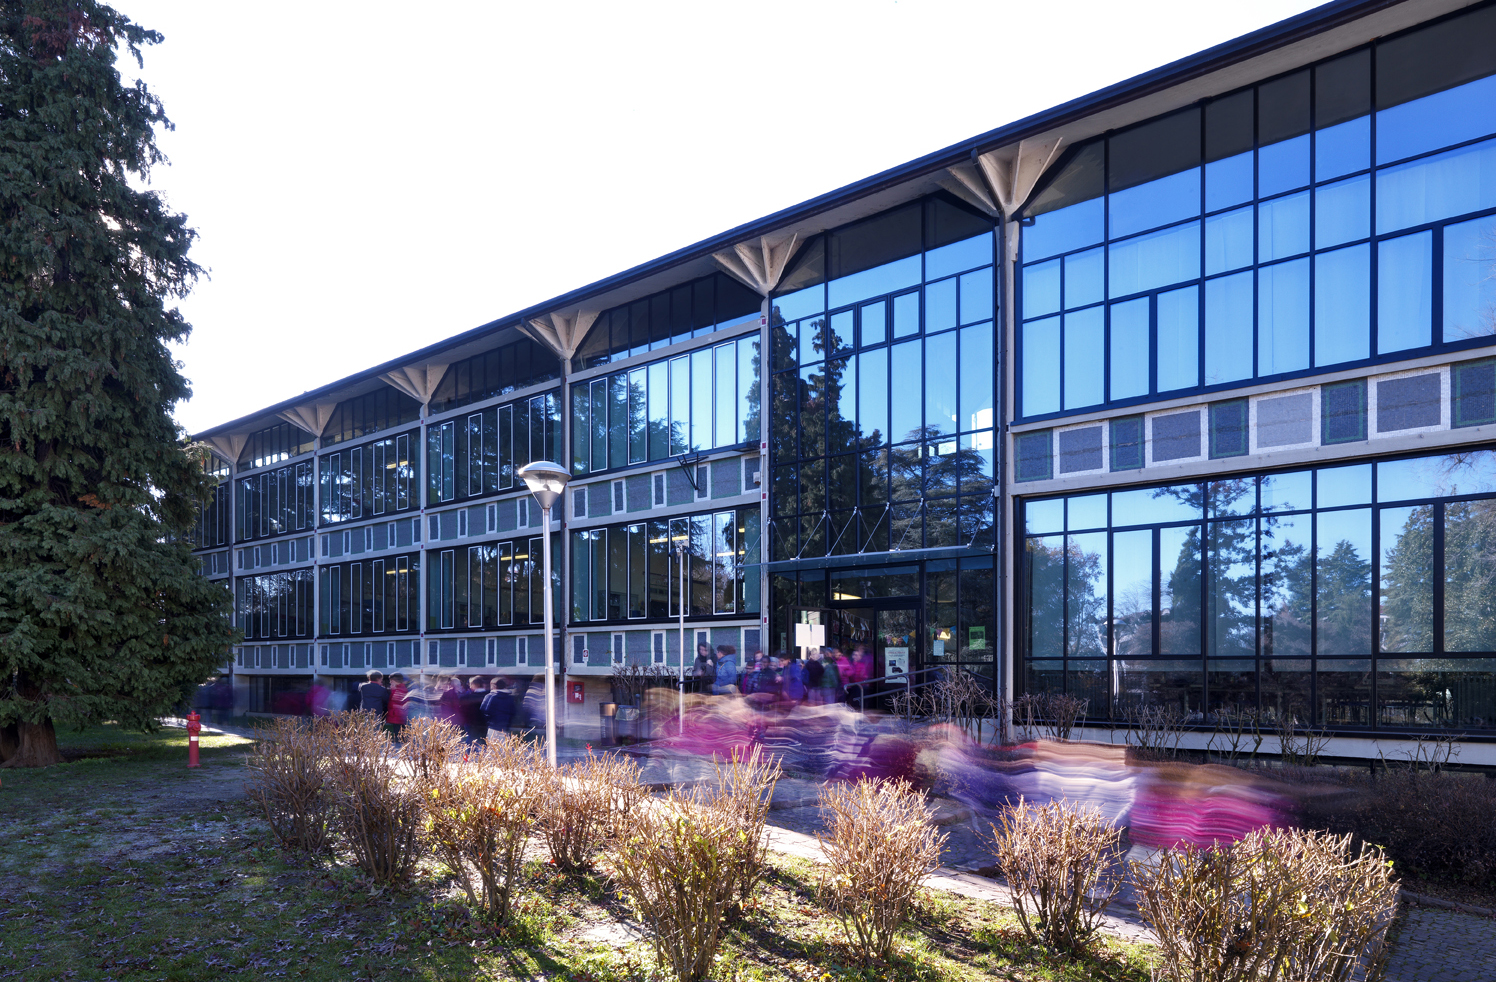 School with glass facade